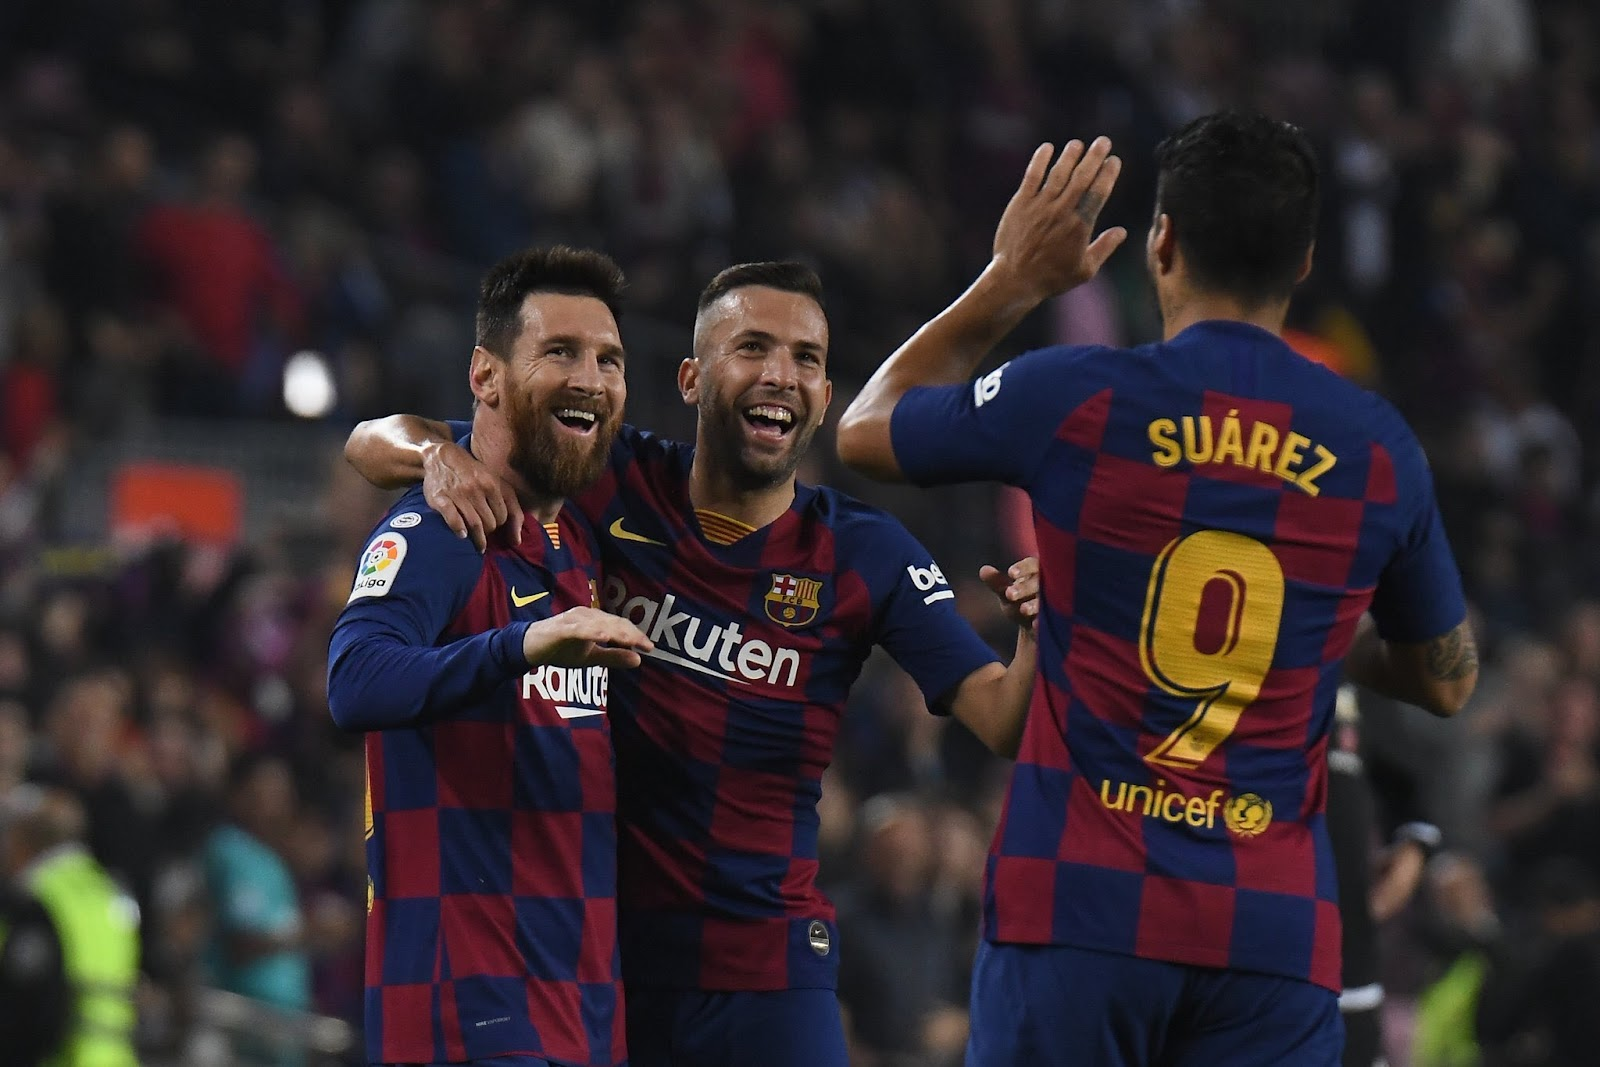 Messi celebrates with Alba and Suarez after scoring against Valadollid in La Liga